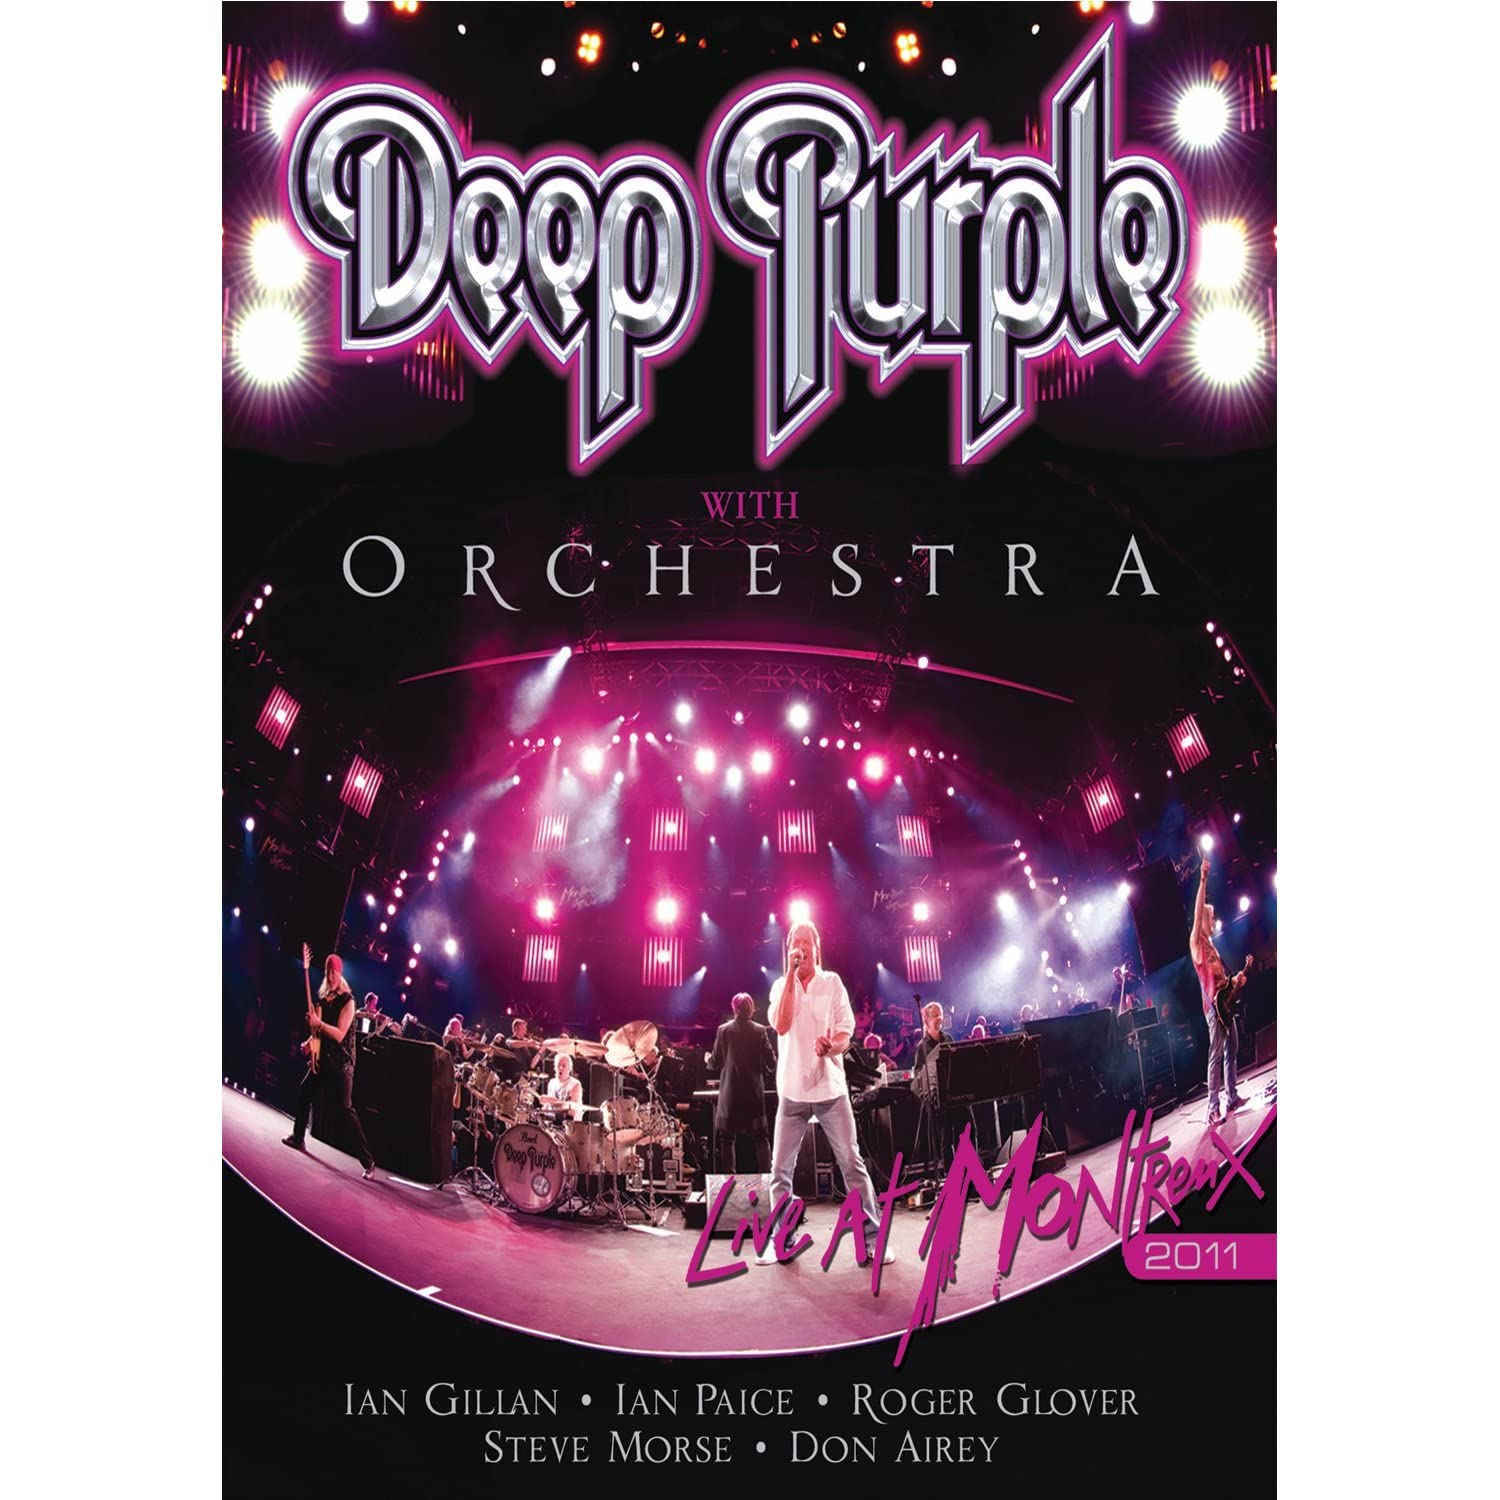 Deep Purple with Orchestra - Live in Montreux 2011